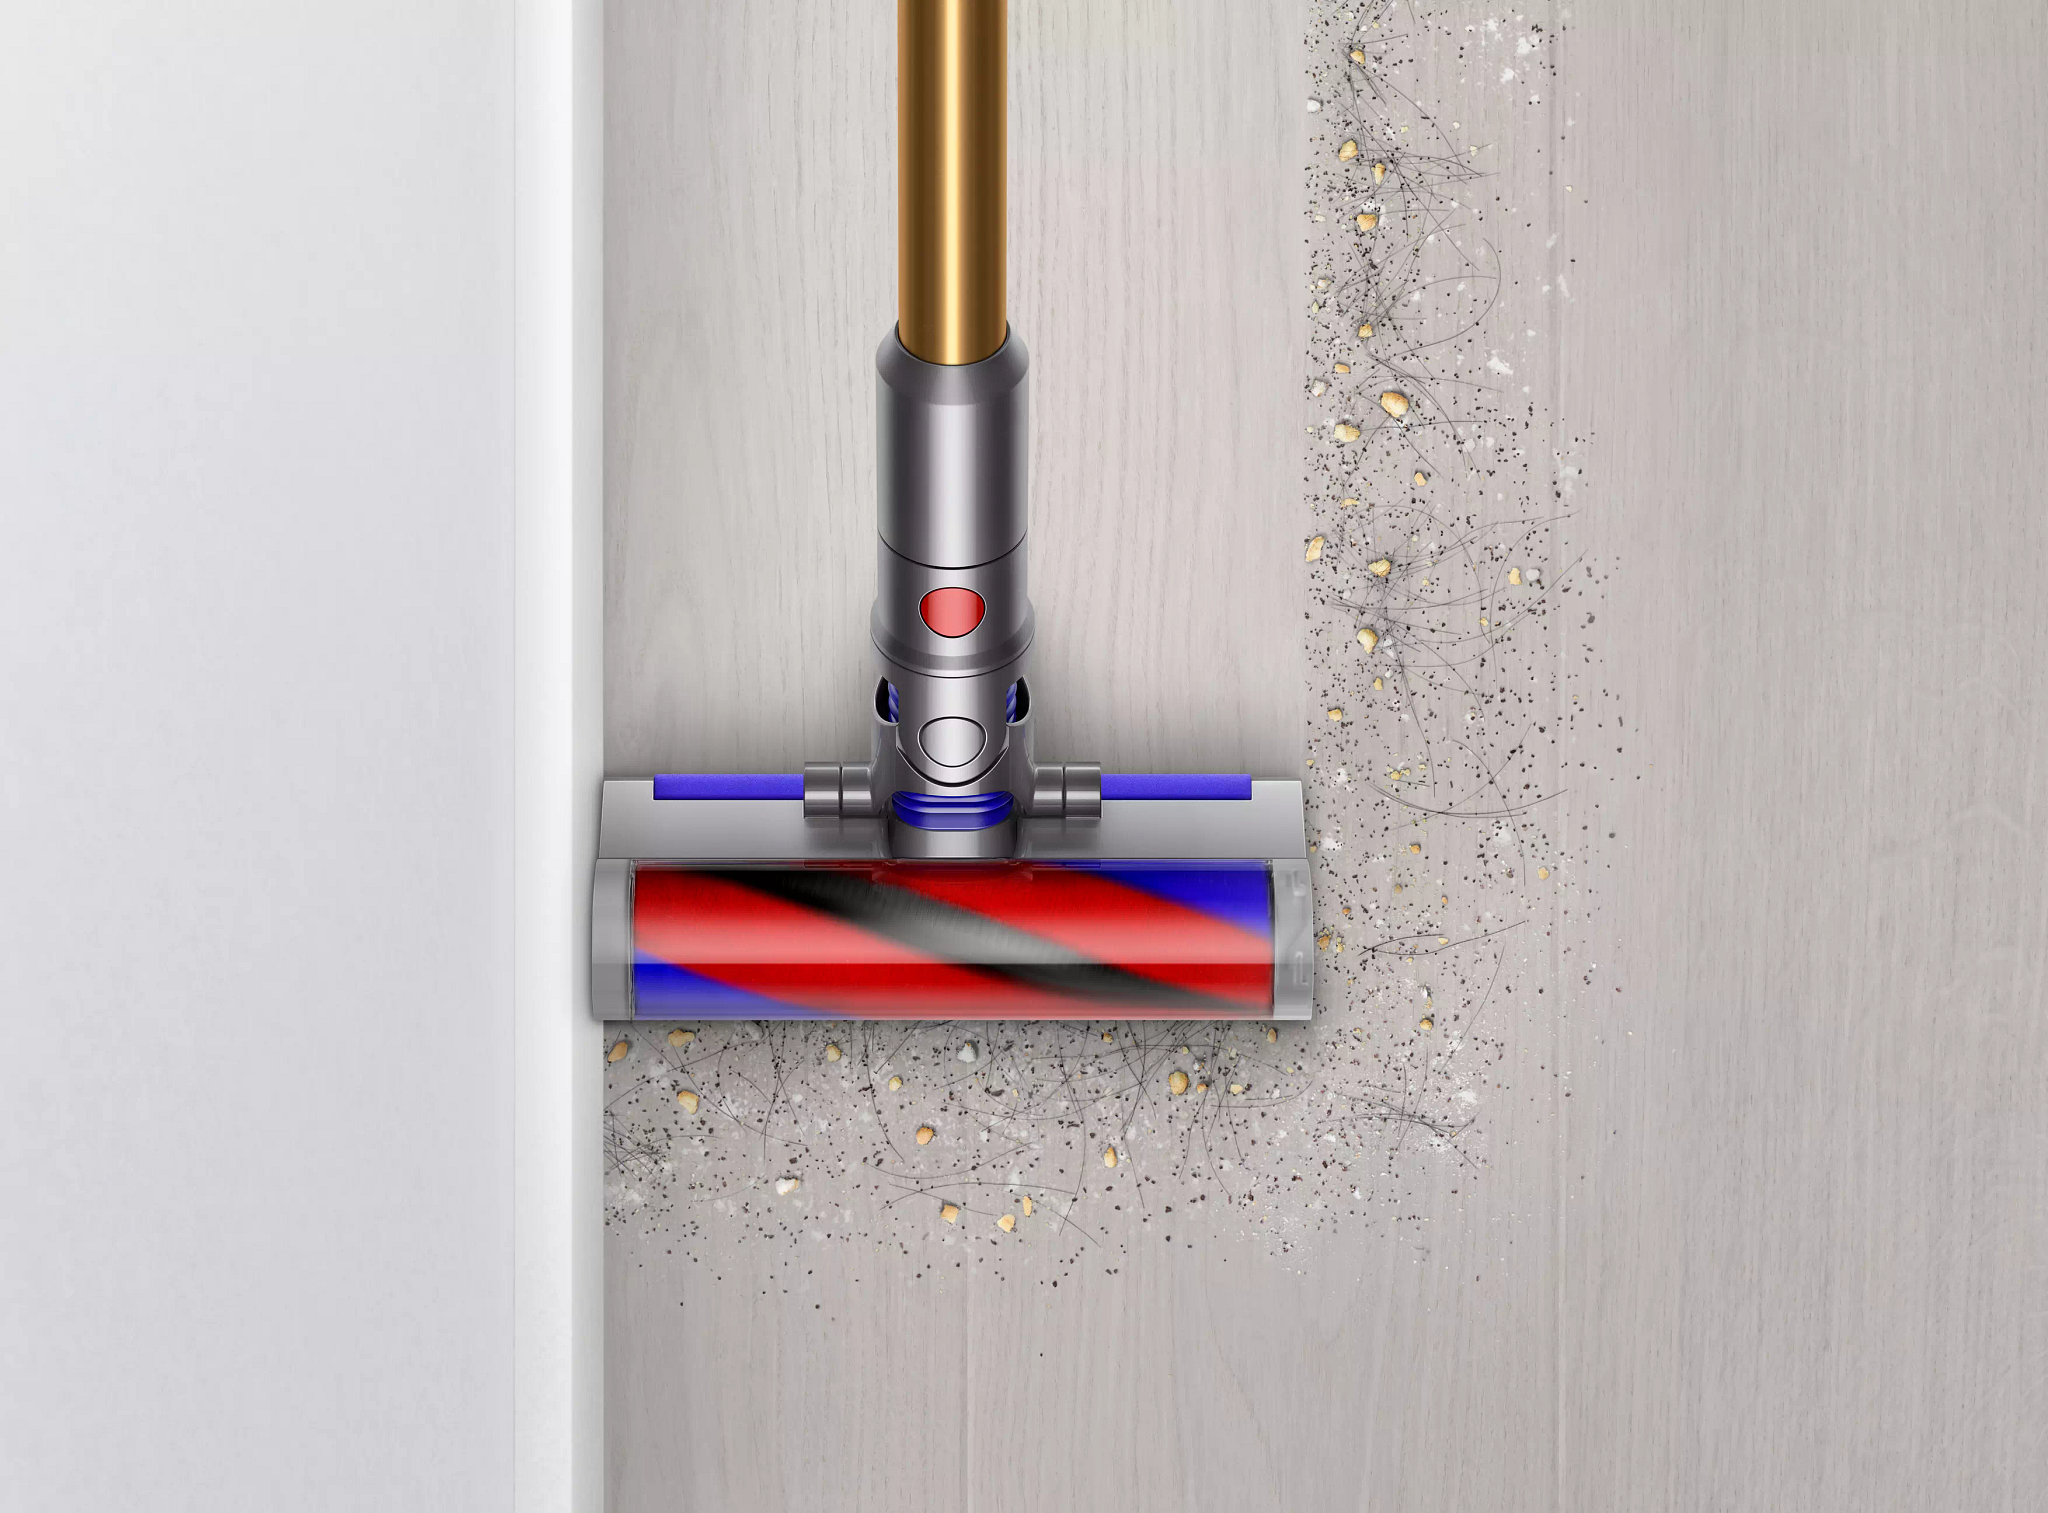 sv21-gldgld-030-rgb-inuse-feature-edgepickup-skirtingboard-microfh-a4-mix.png